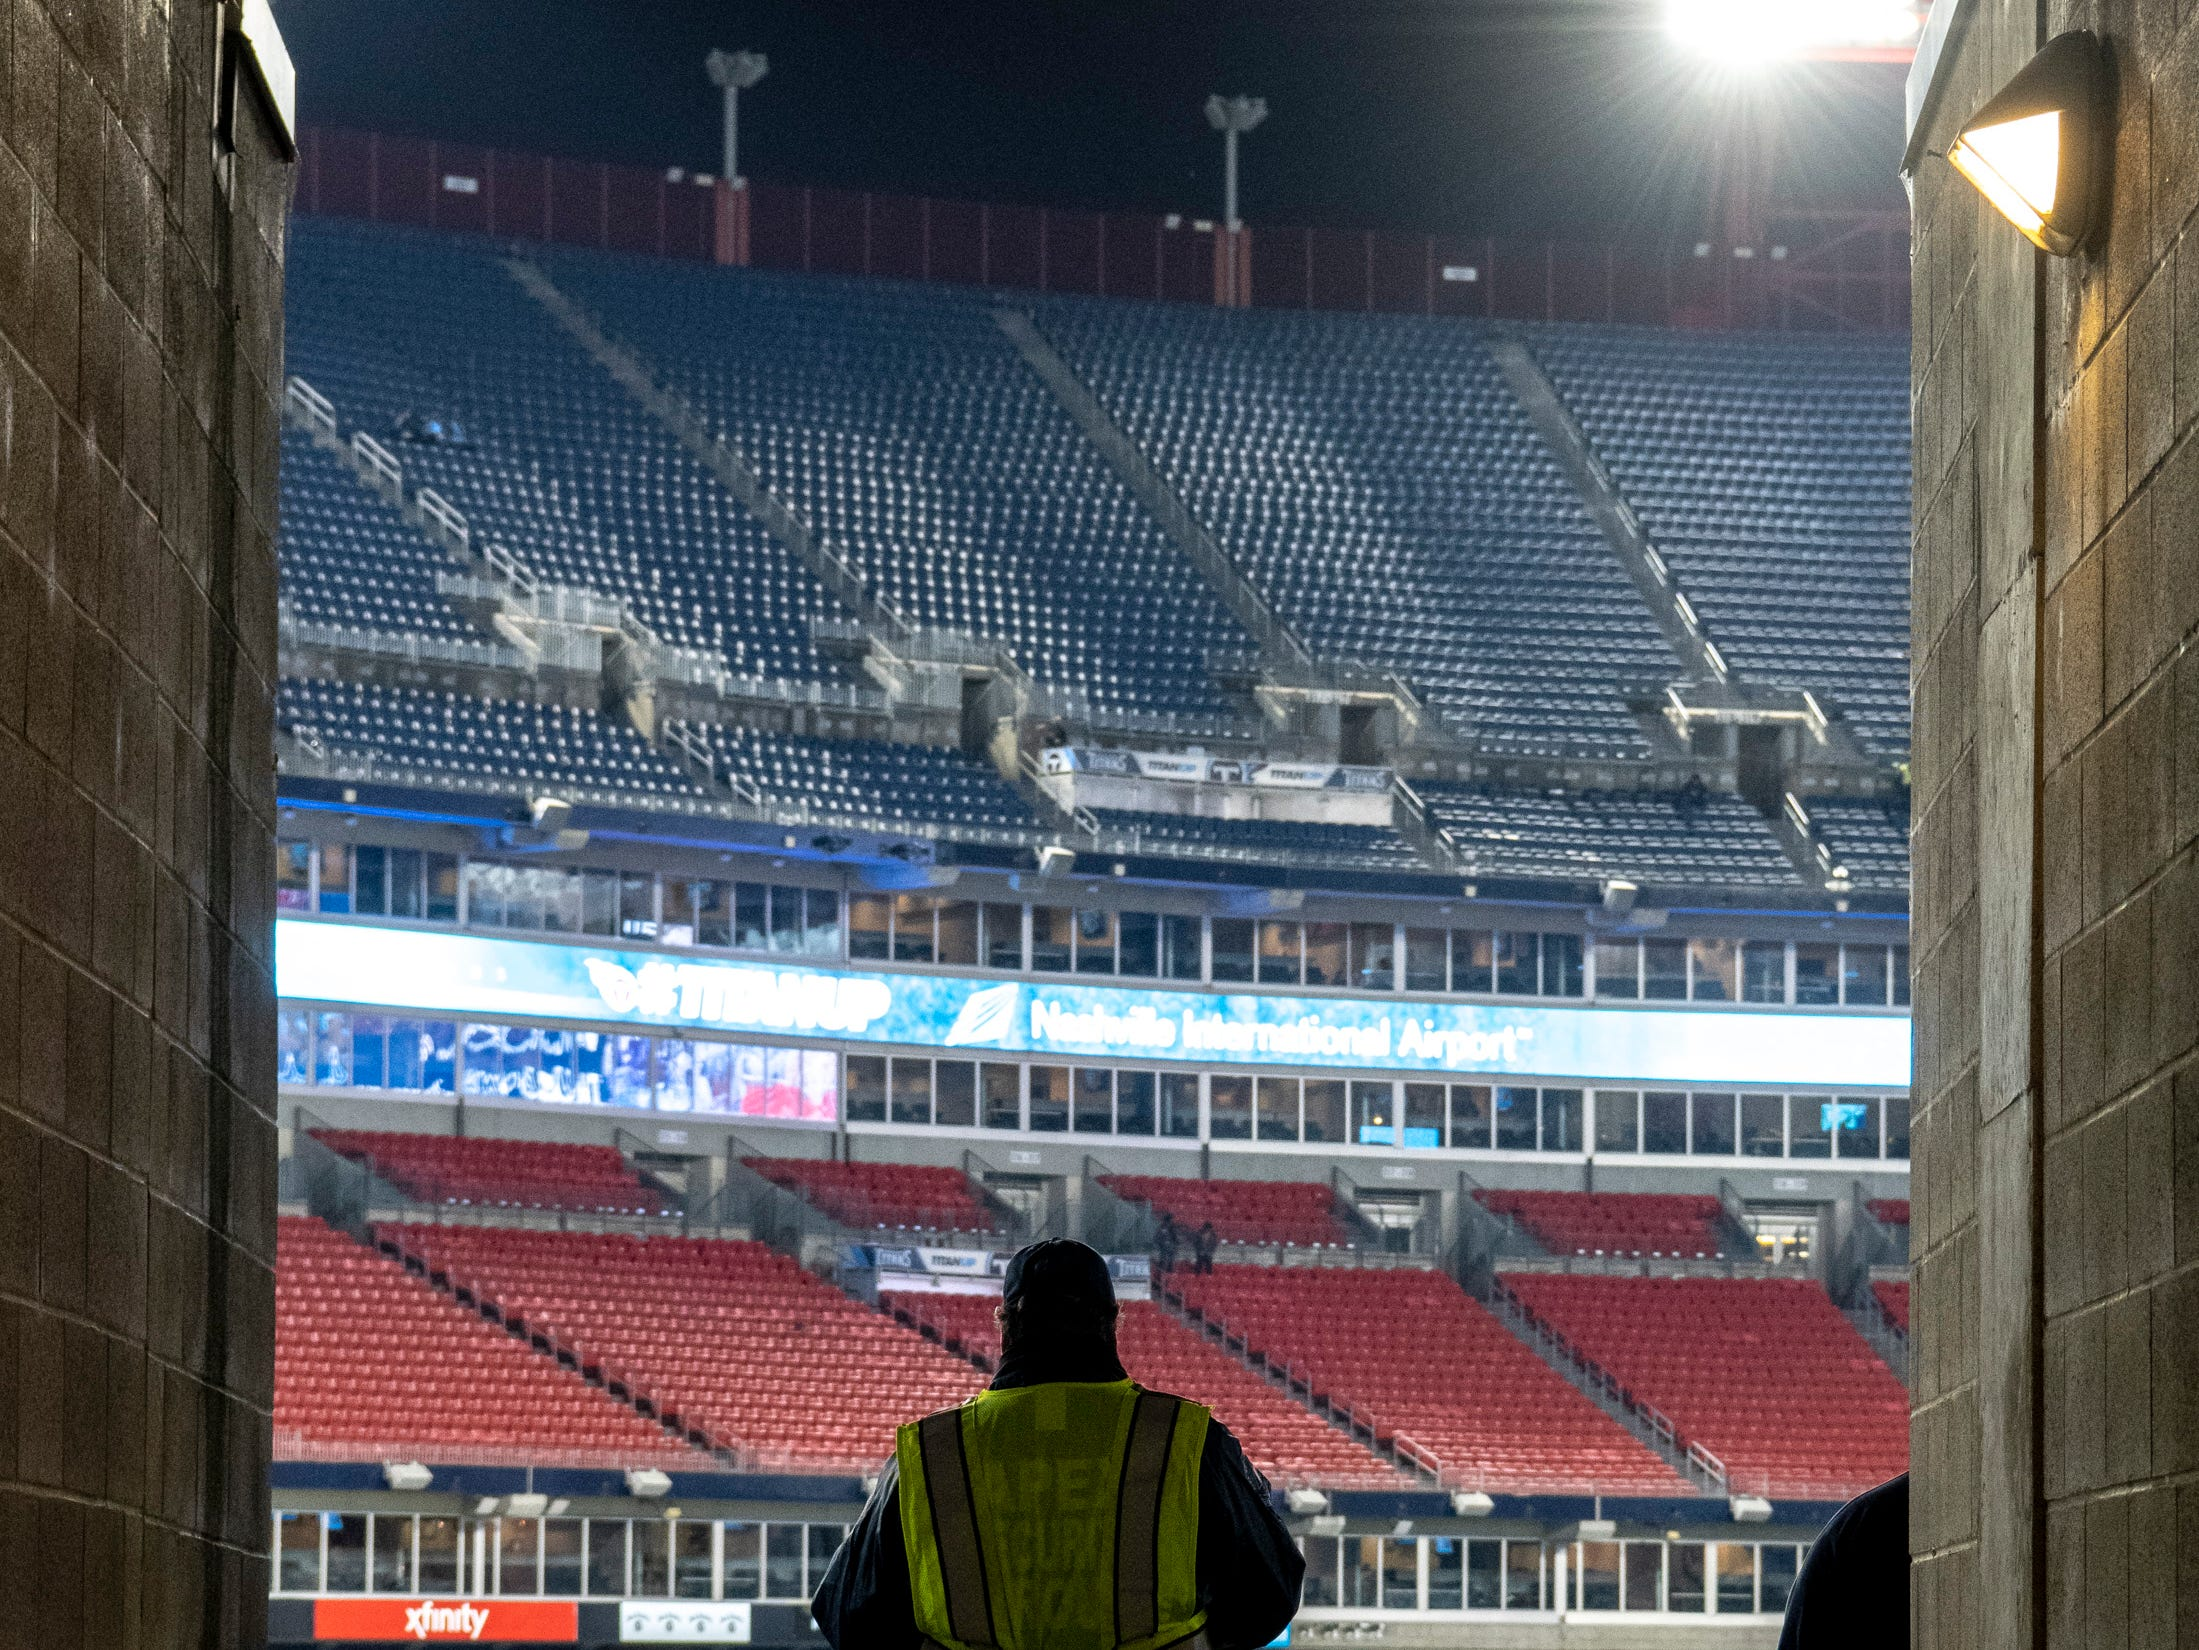 Security keeps watch as fans begin to arrive before the game between the Tennessee Titans and the Jacksonville Jaguars at Nissan Stadium in Nashville, Tenn., Thursday, Dec. 6, 2018.